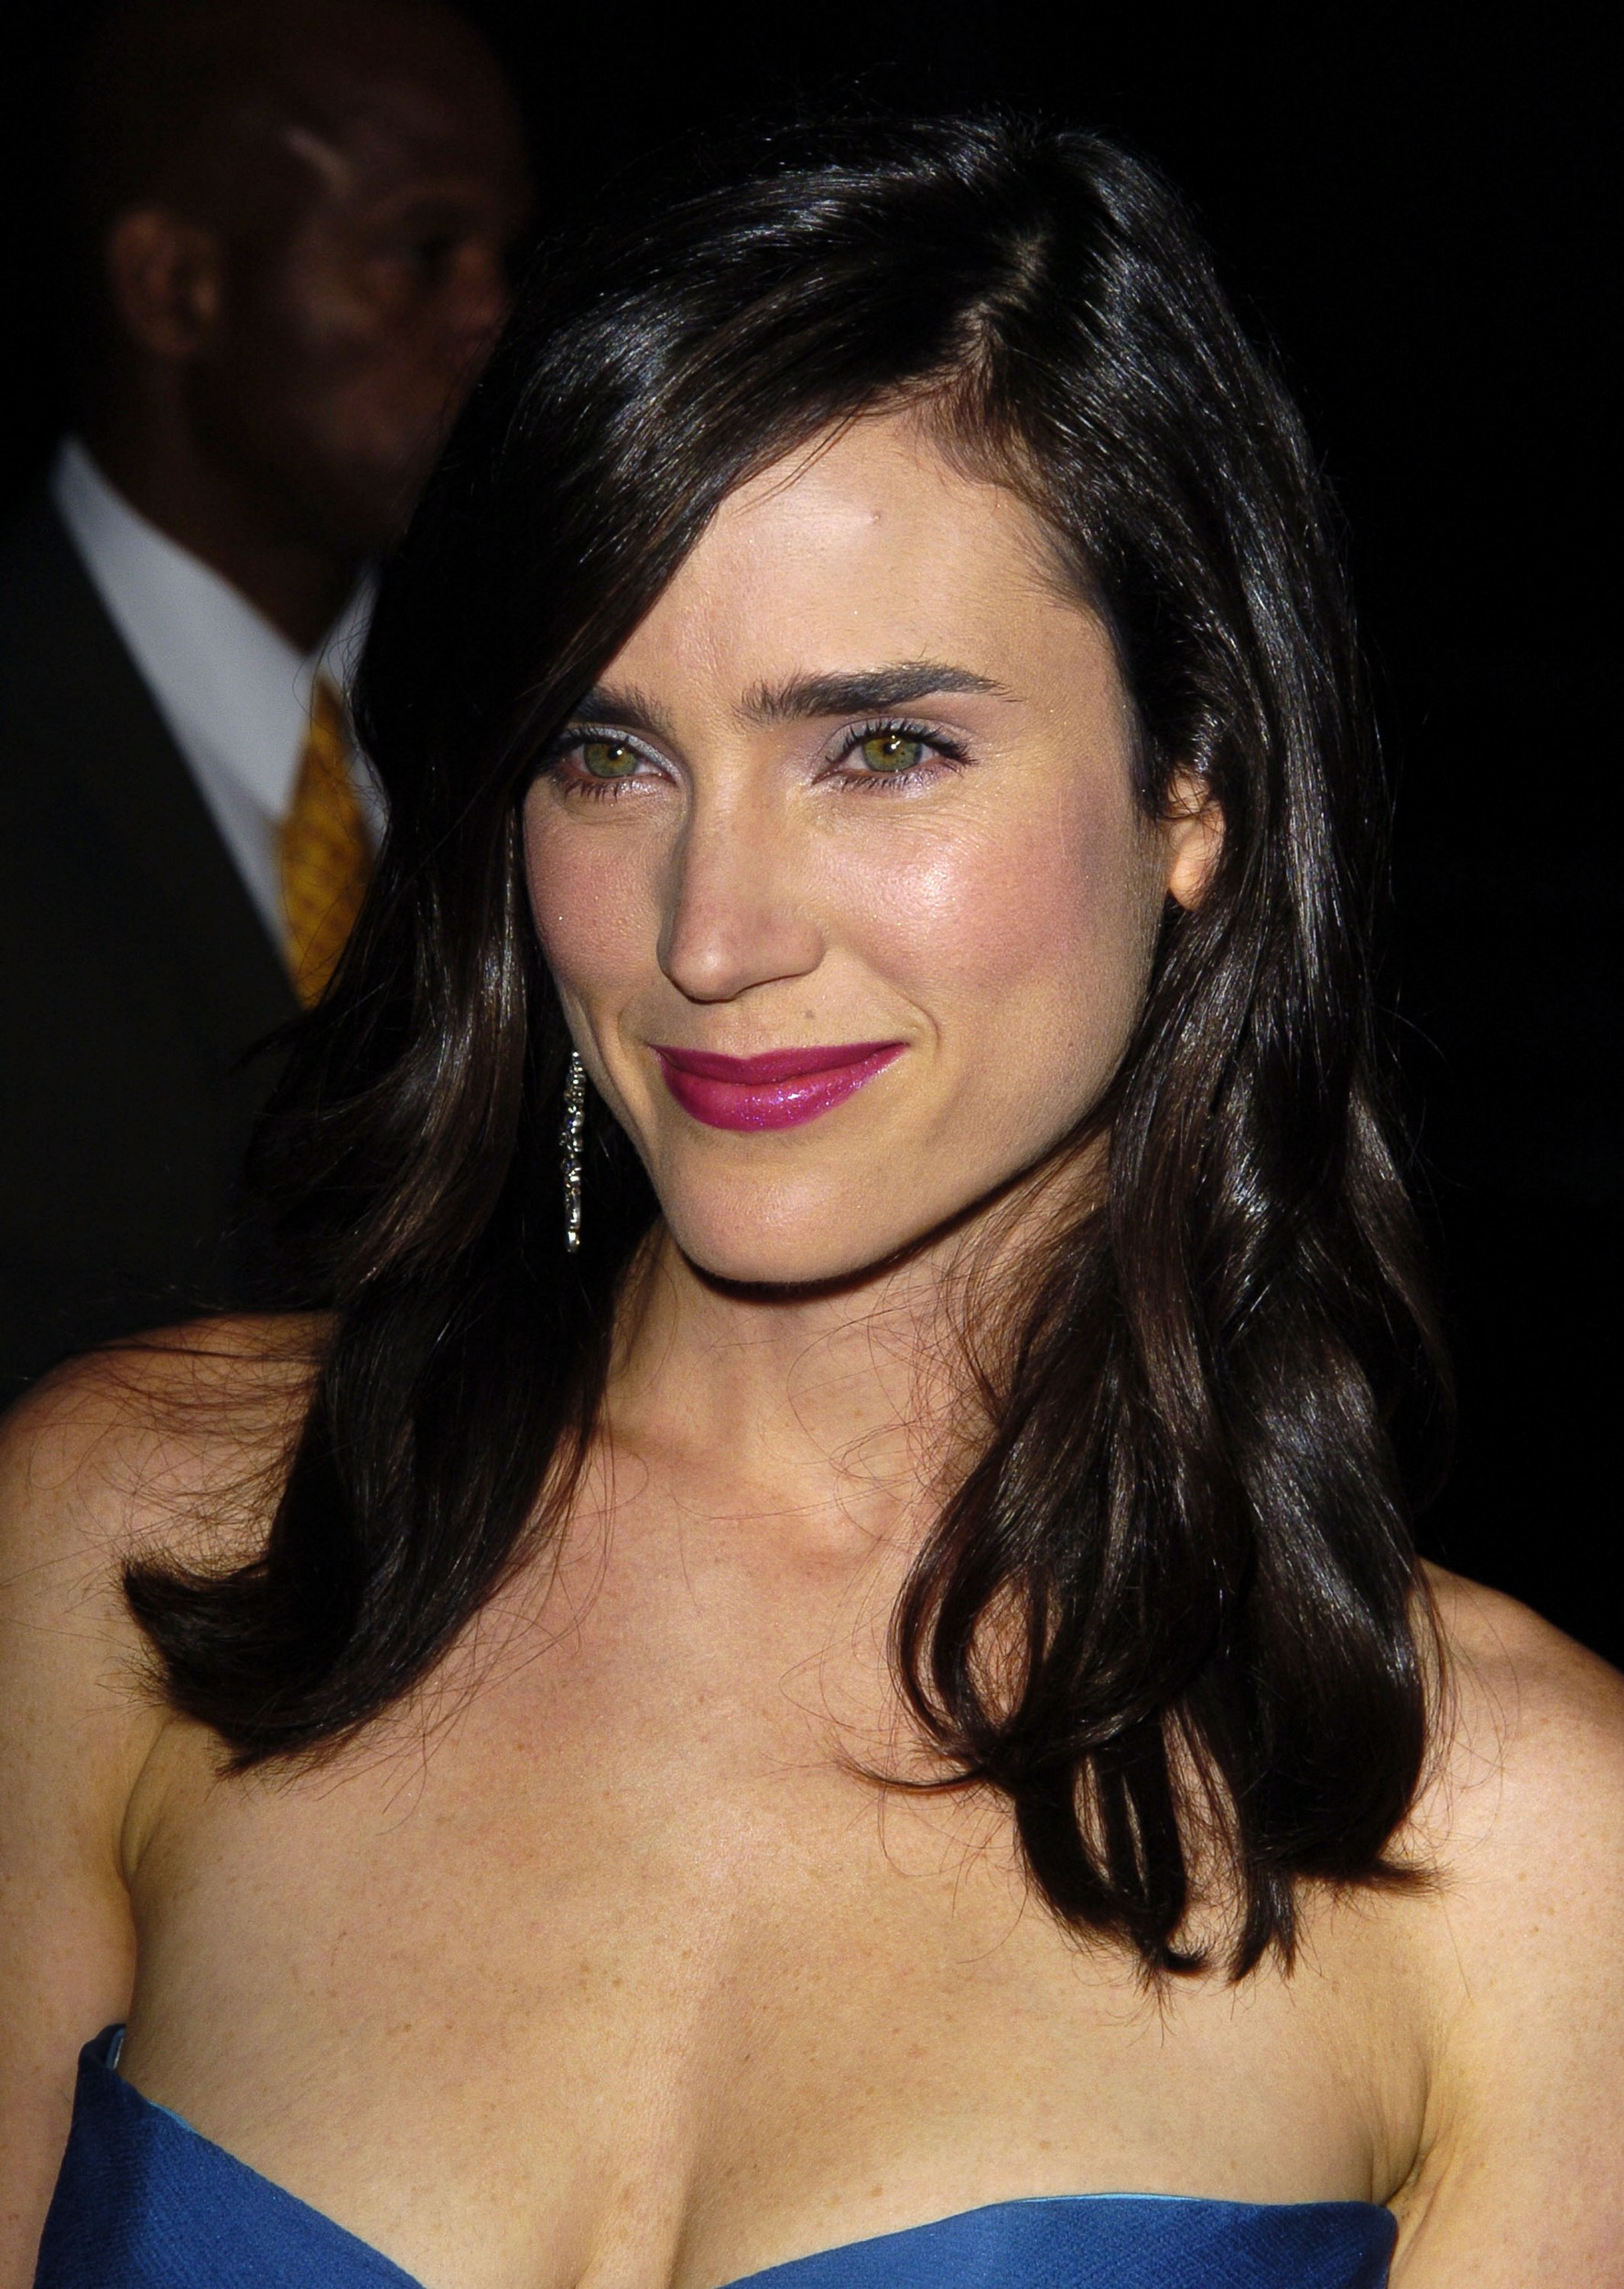 44 Photos 72 Reviews: Jennifer Connelly Pictures Gallery (44)